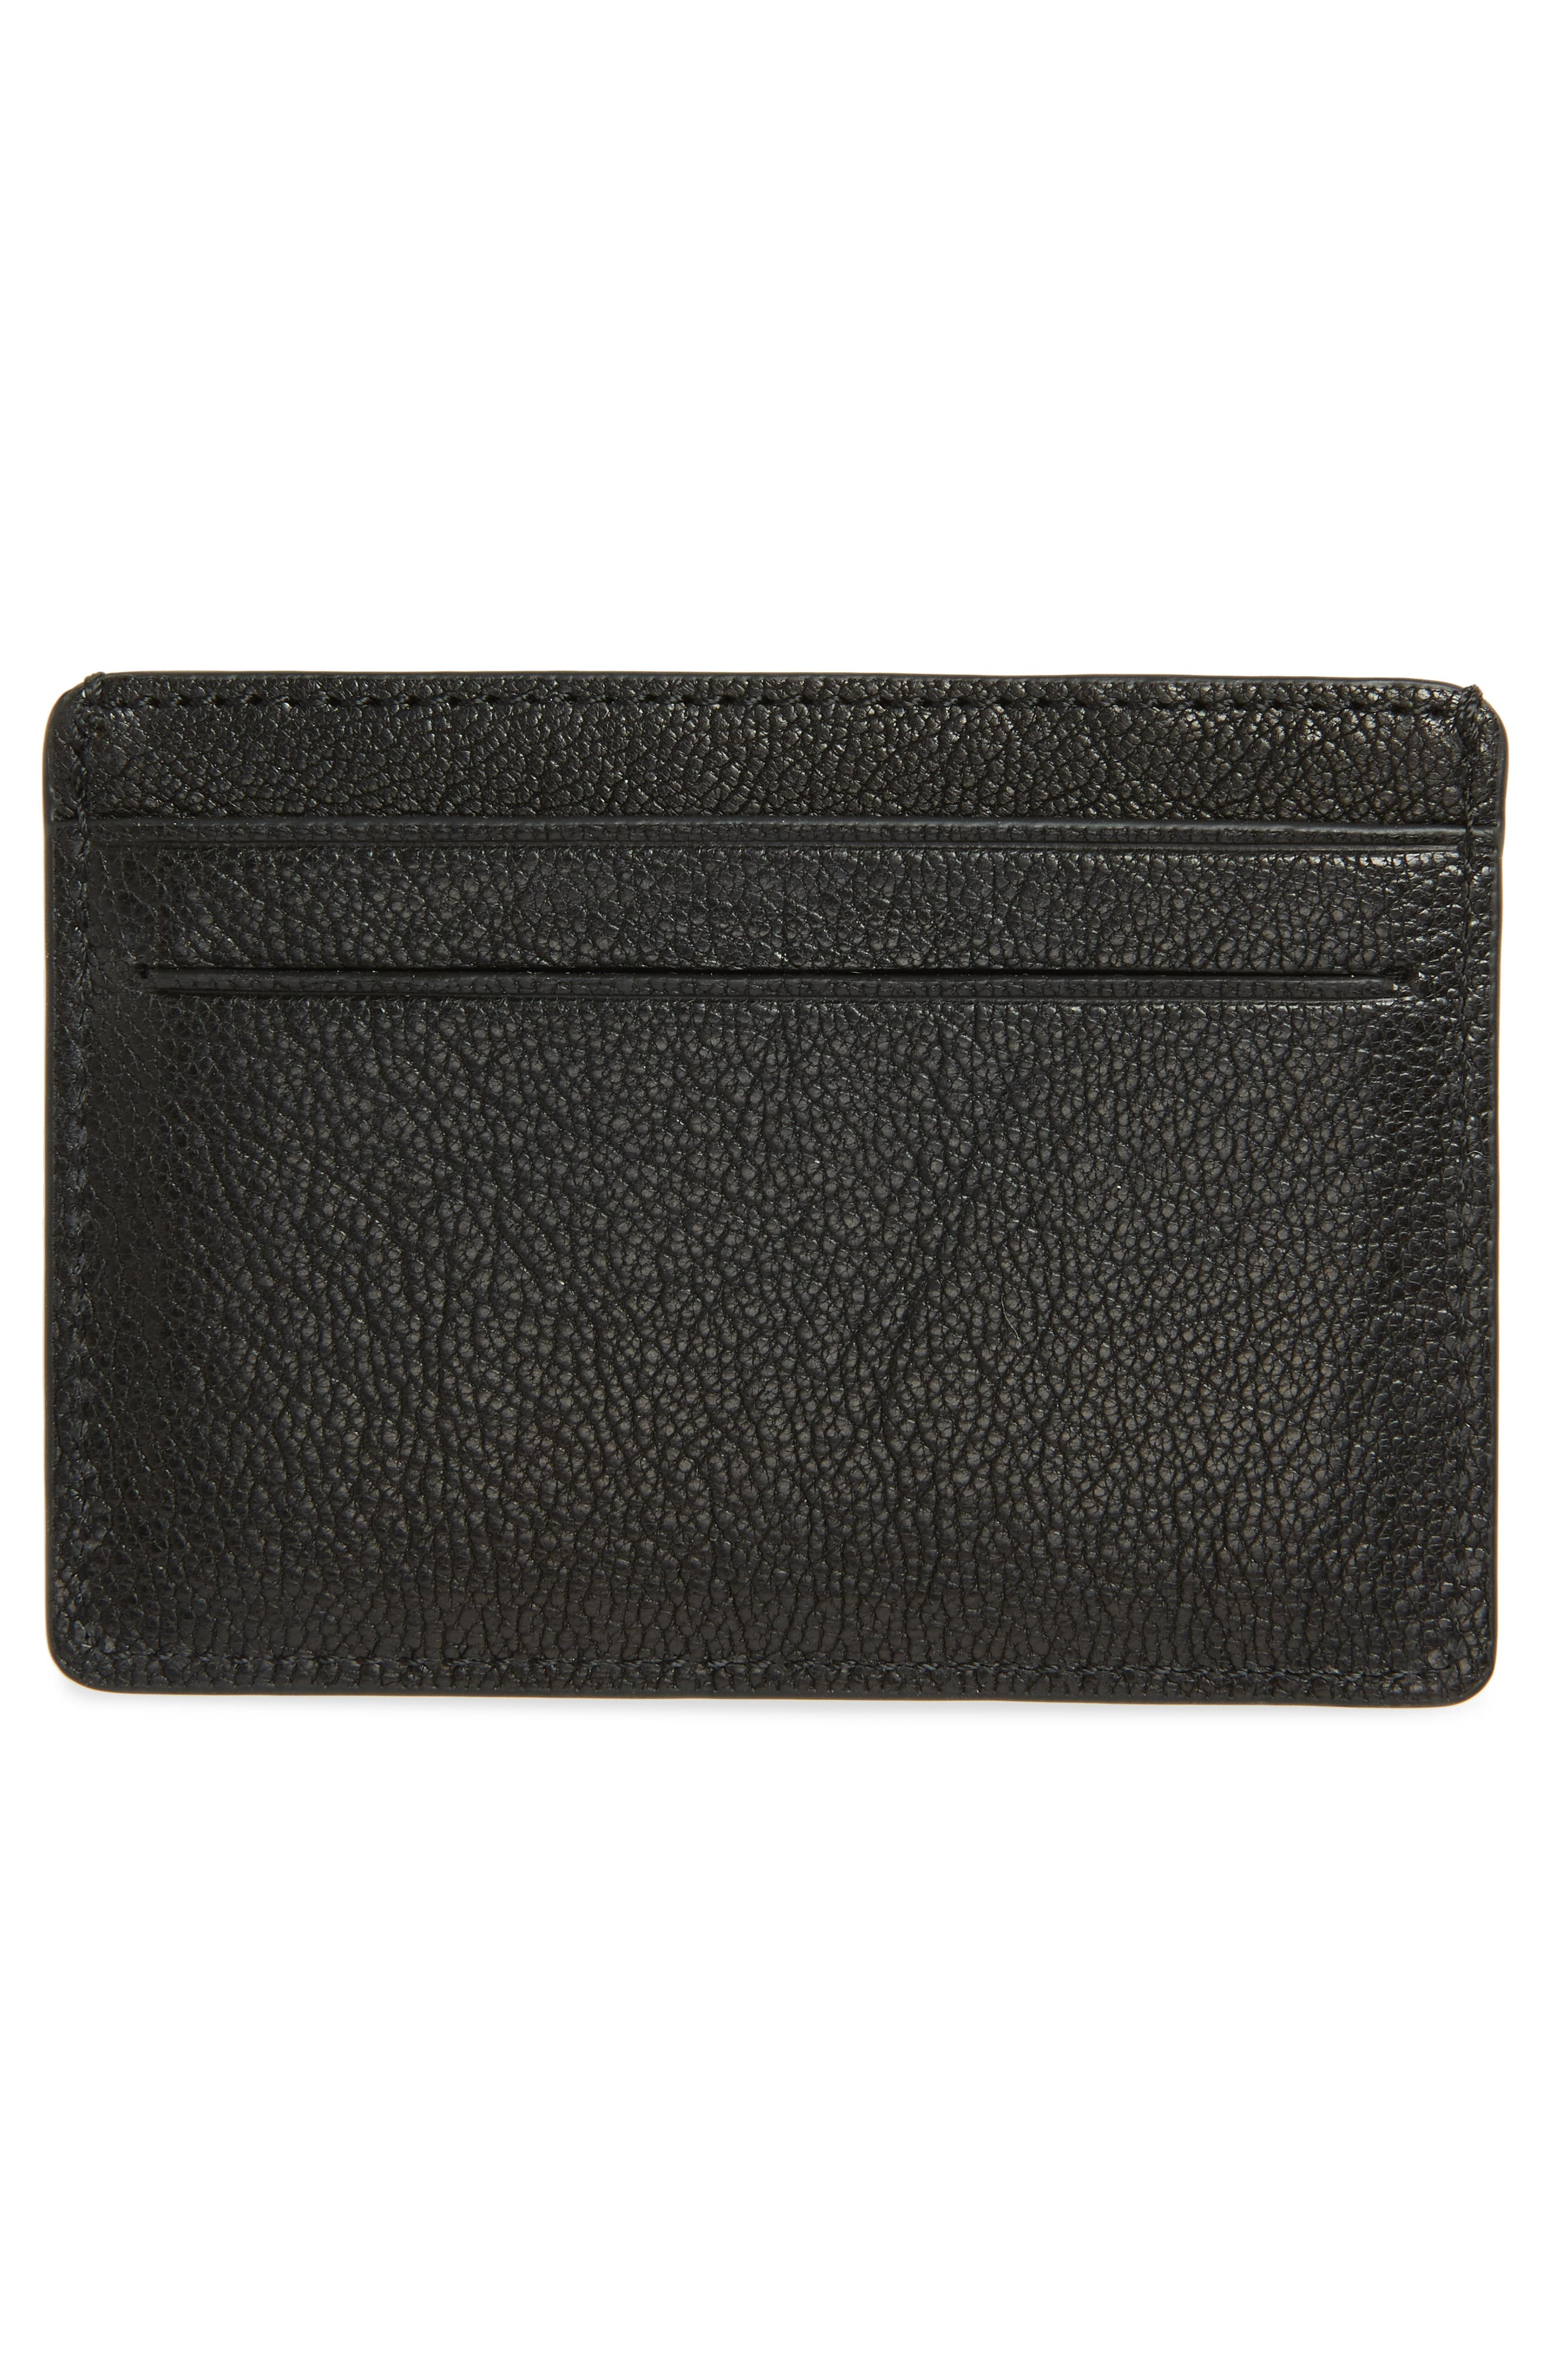 PAUL SMITH,                             Leather Card Case,                             Alternate thumbnail 2, color,                             001